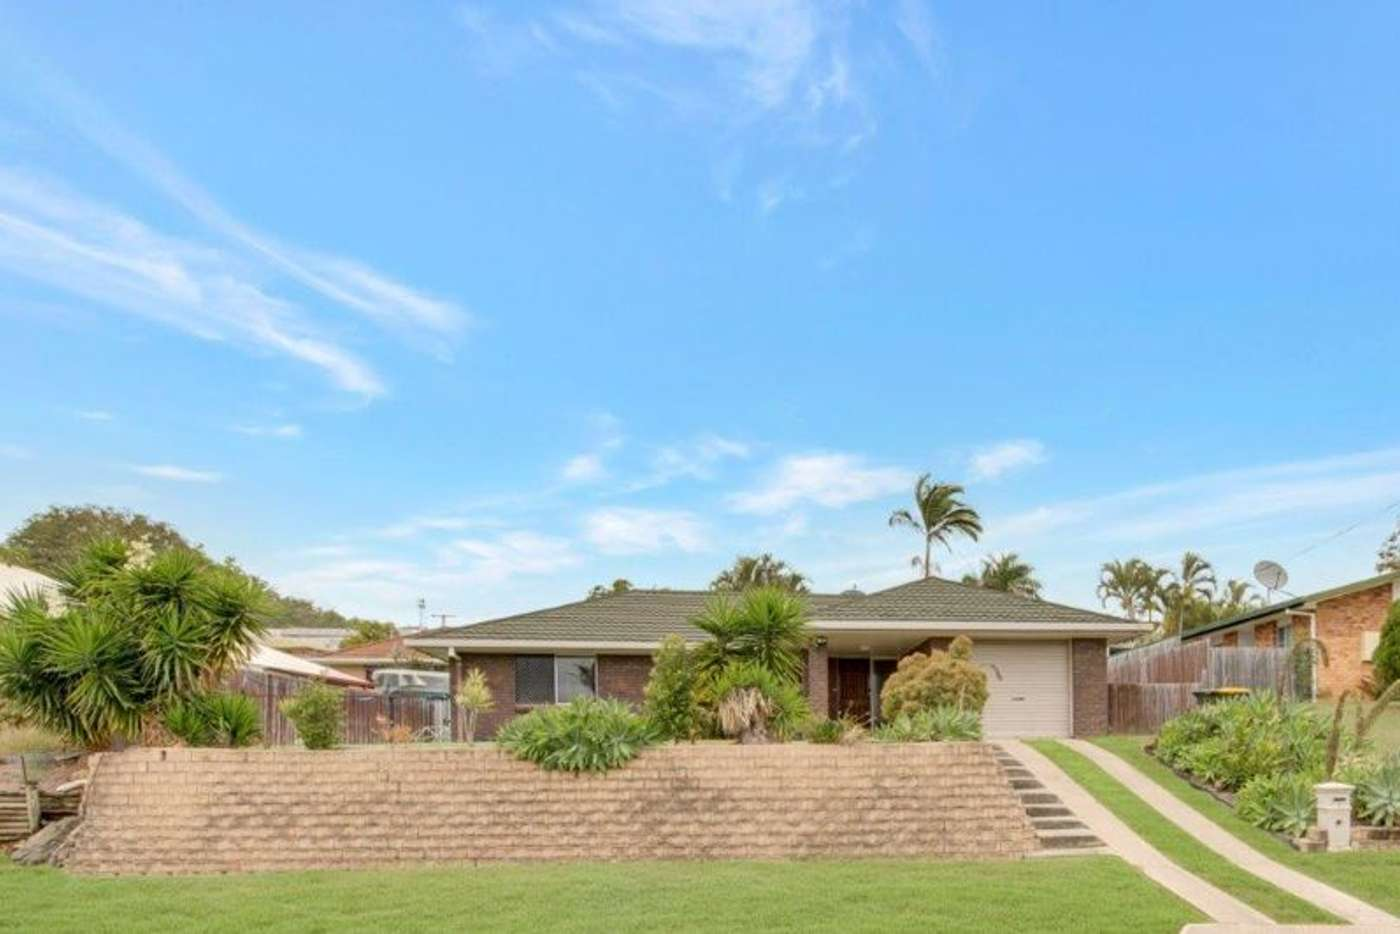 Main view of Homely house listing, 3 Finchley Street, Telina QLD 4680